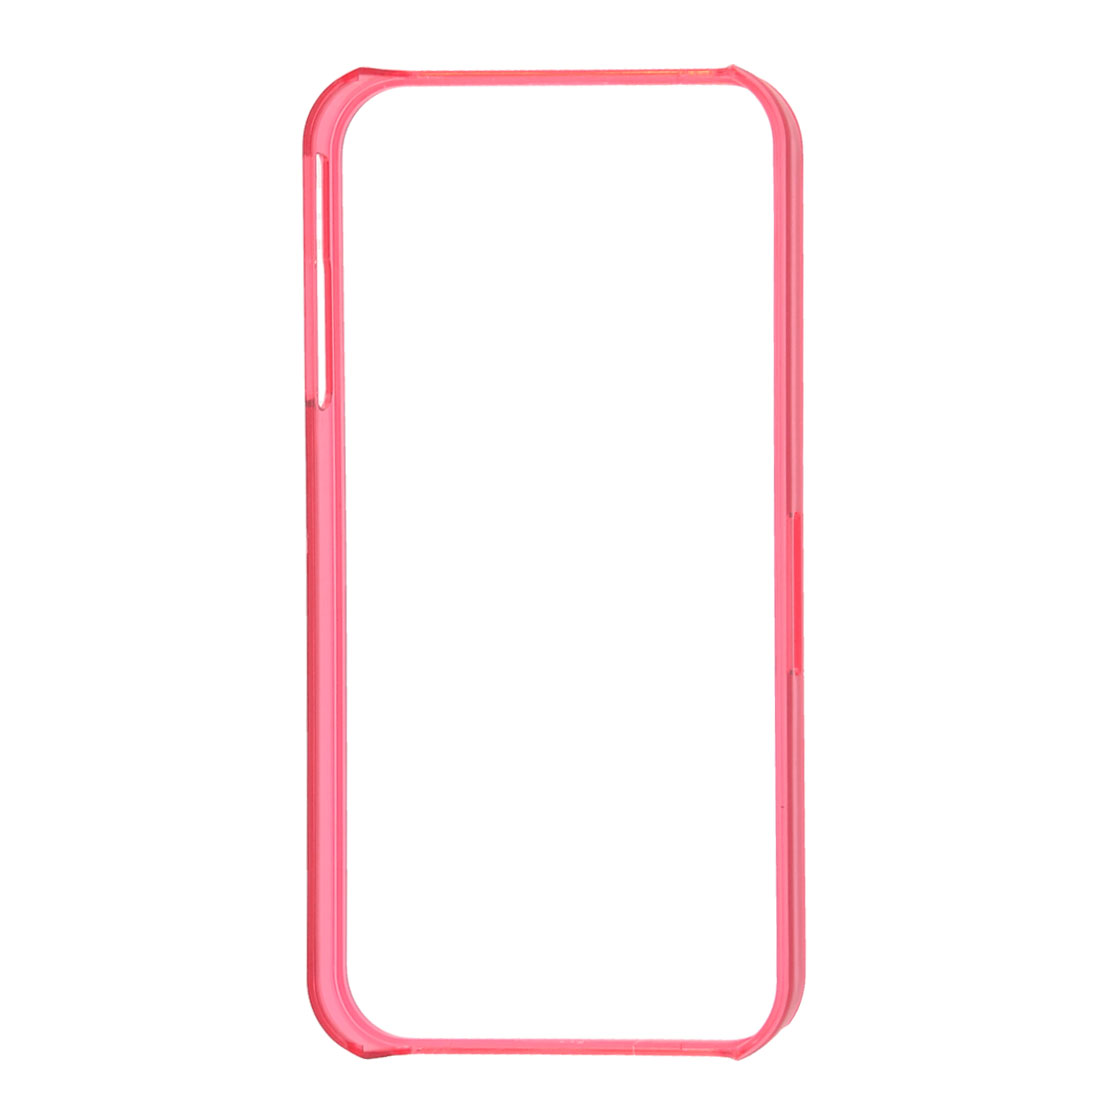 Clear Fuchsia Plastic Bumping Protective Bumper Rim Cover for iPhone 4S 4GS